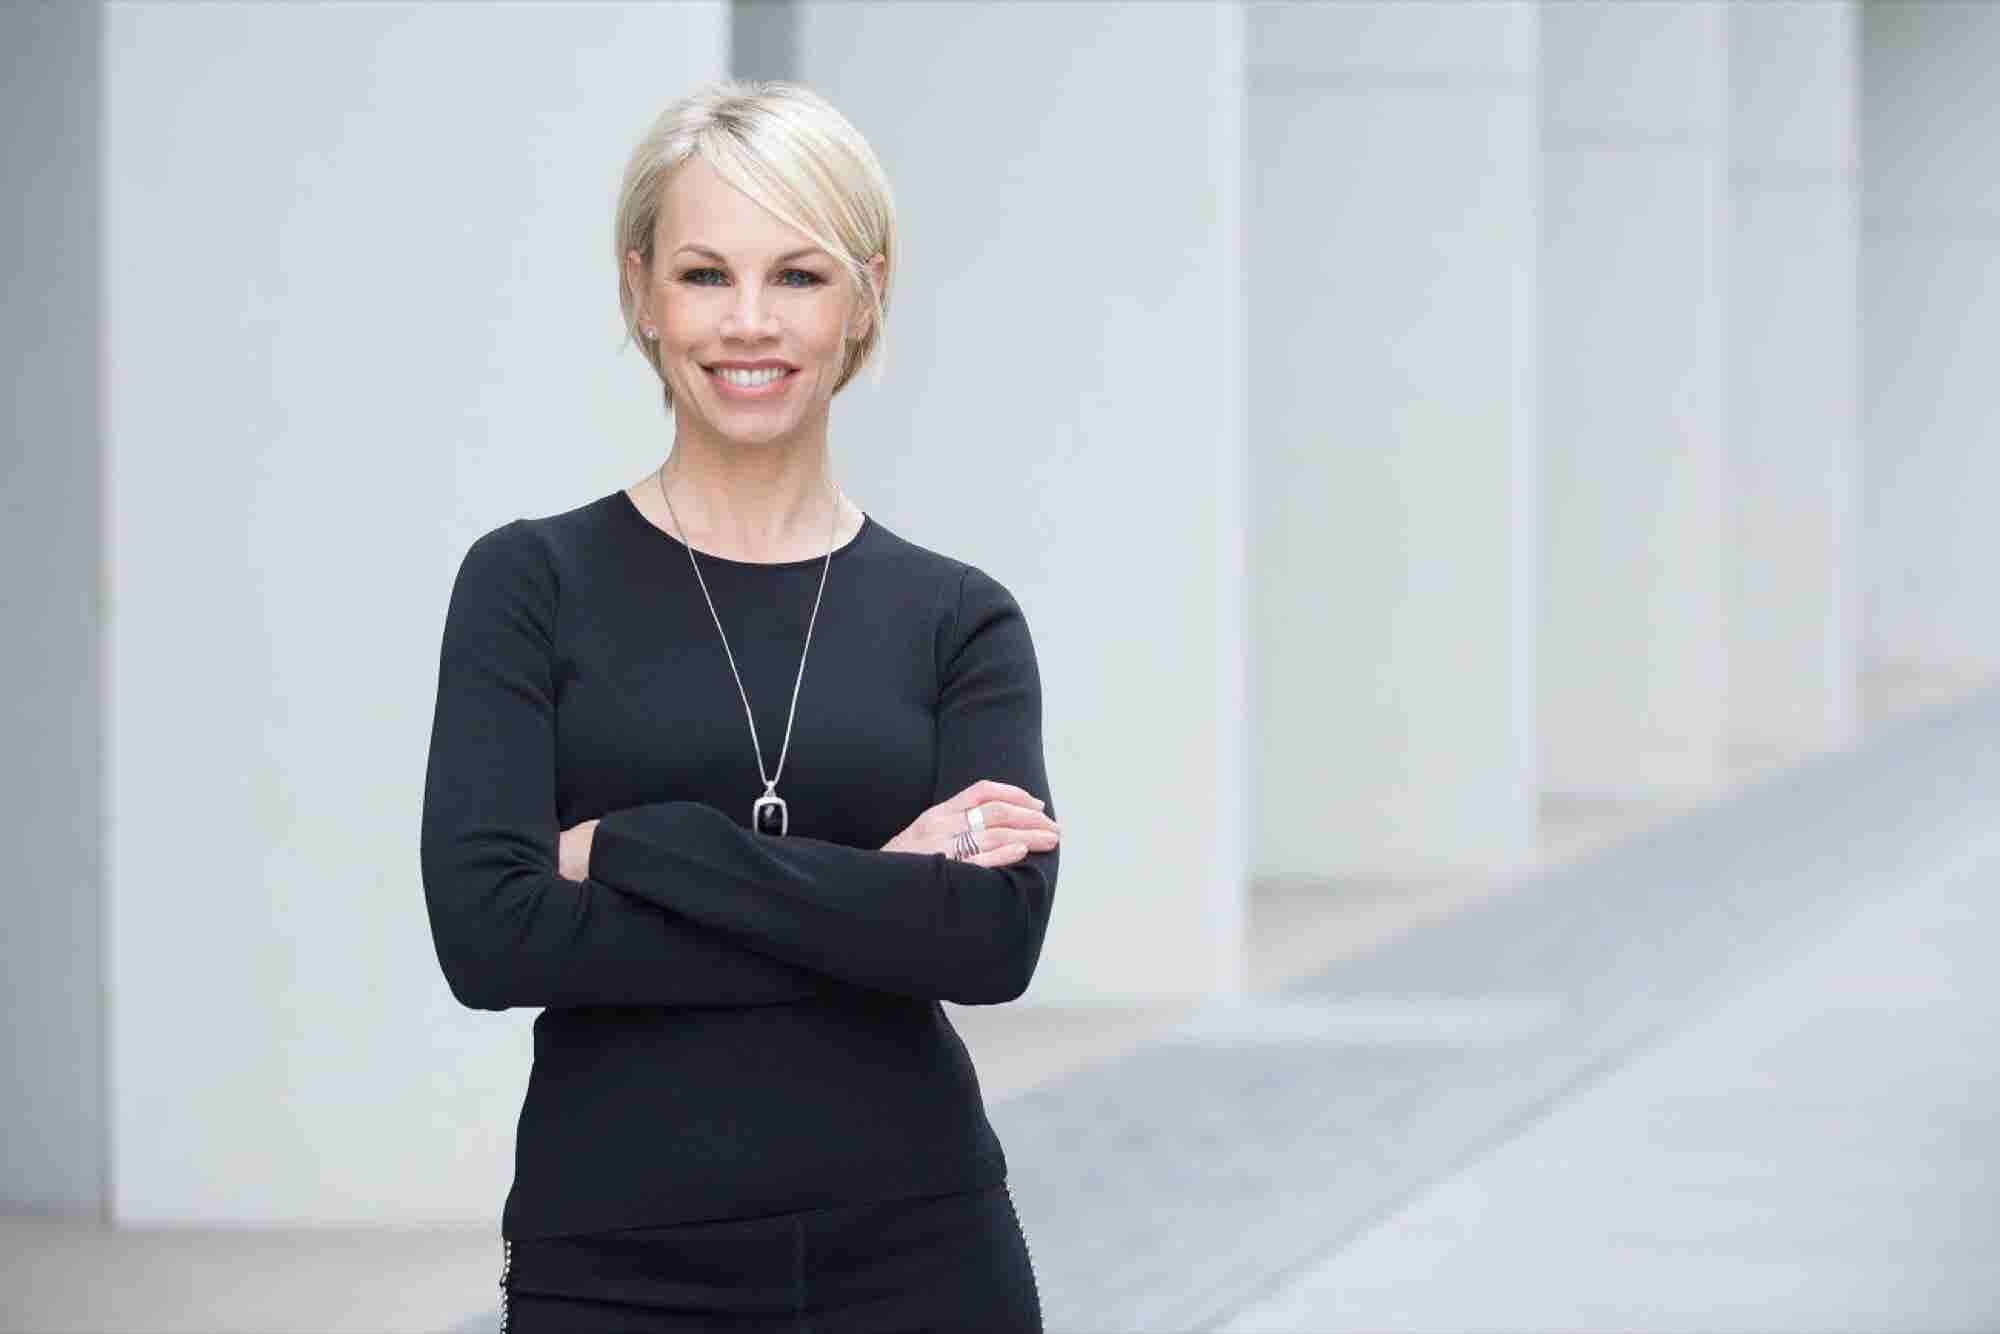 How a Near-Death Experience Inspired This Entrepreneur to Change Her Career and Plug Into Her Purpose